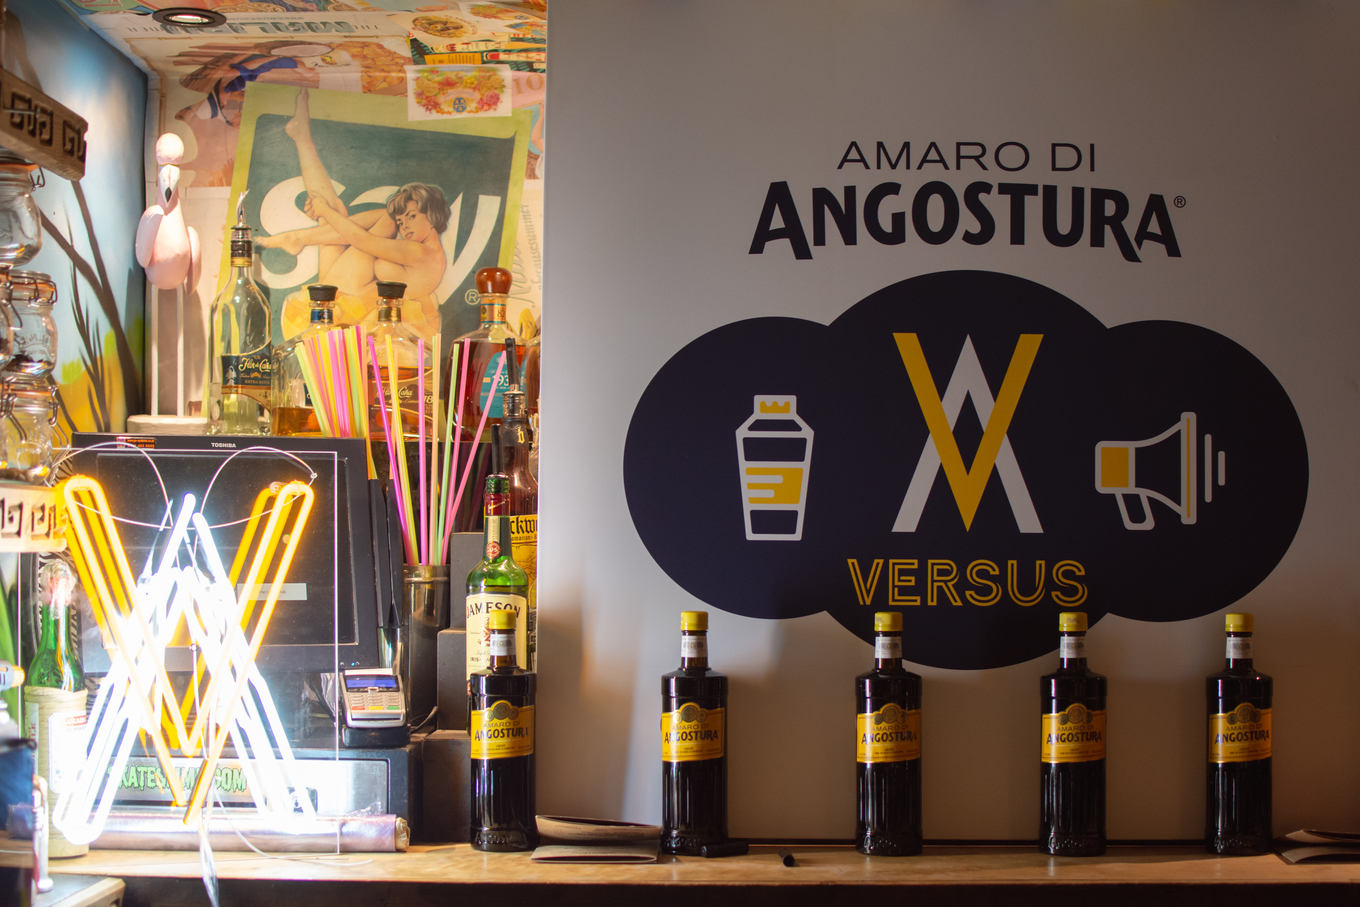 Amaro di Angostura Versus Cocktail Competition image 1